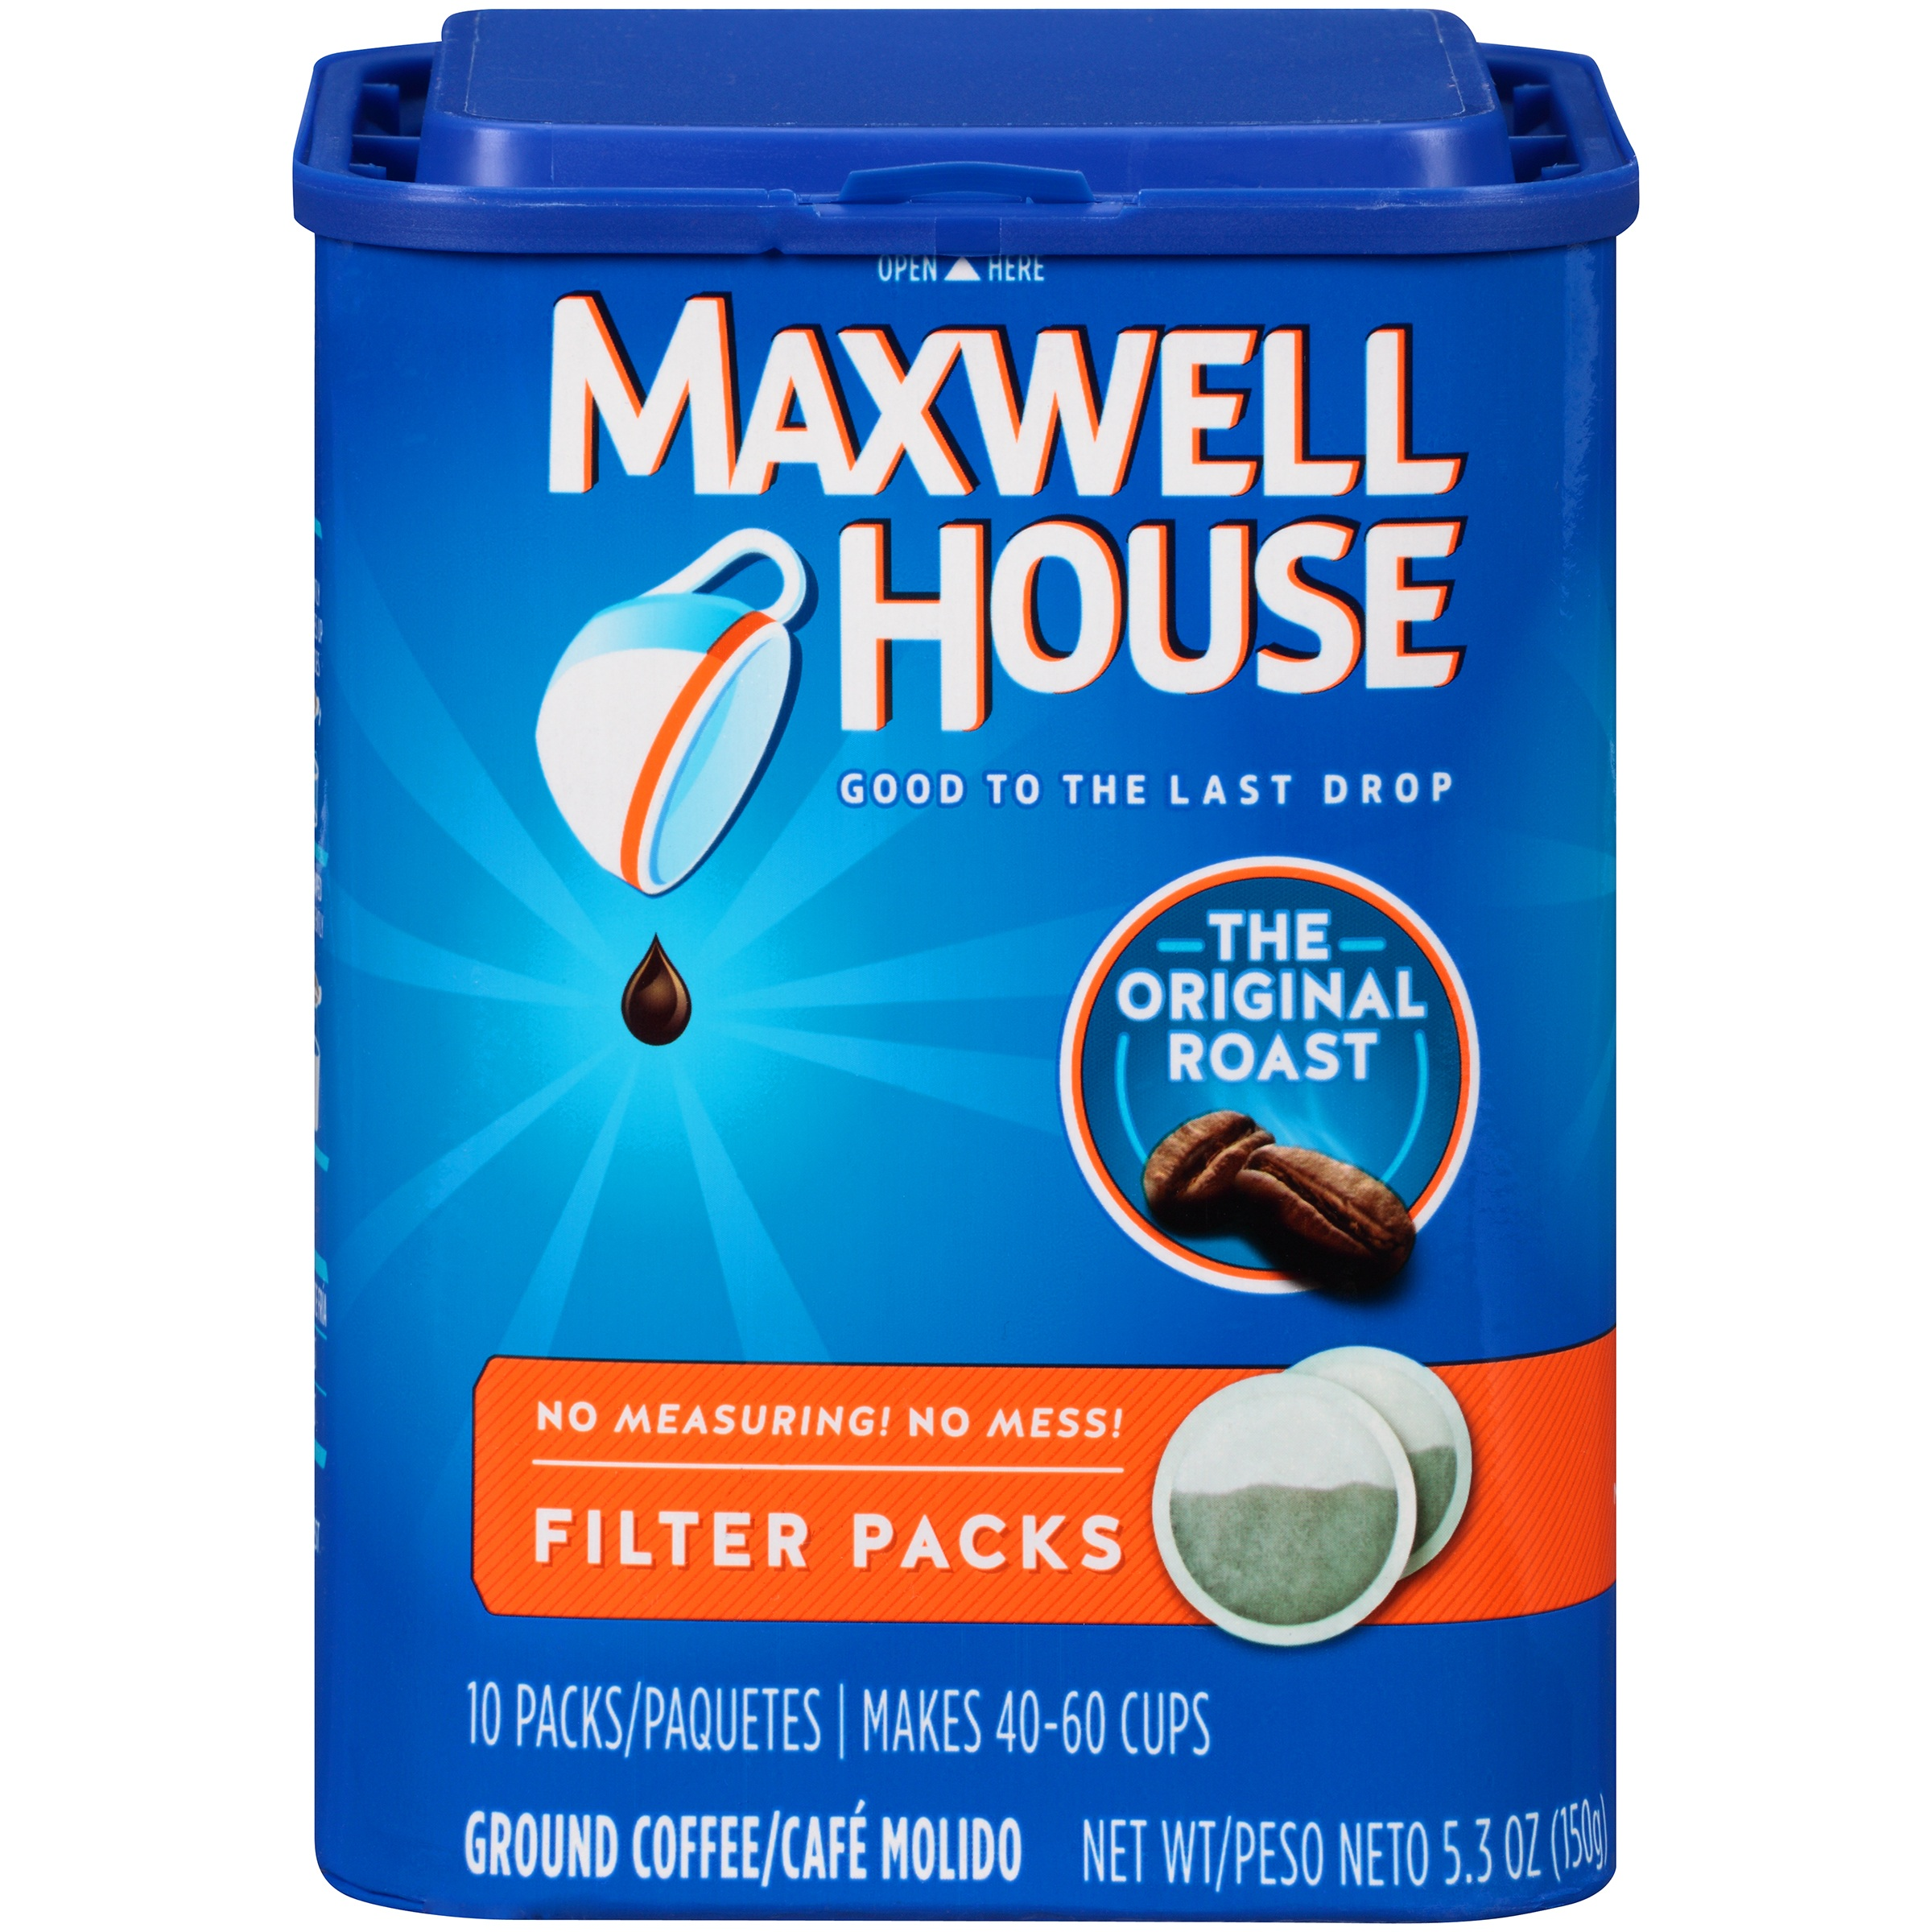 Maxwell House Original Roast Ground Coffee Filter Packs 10 ct Tub